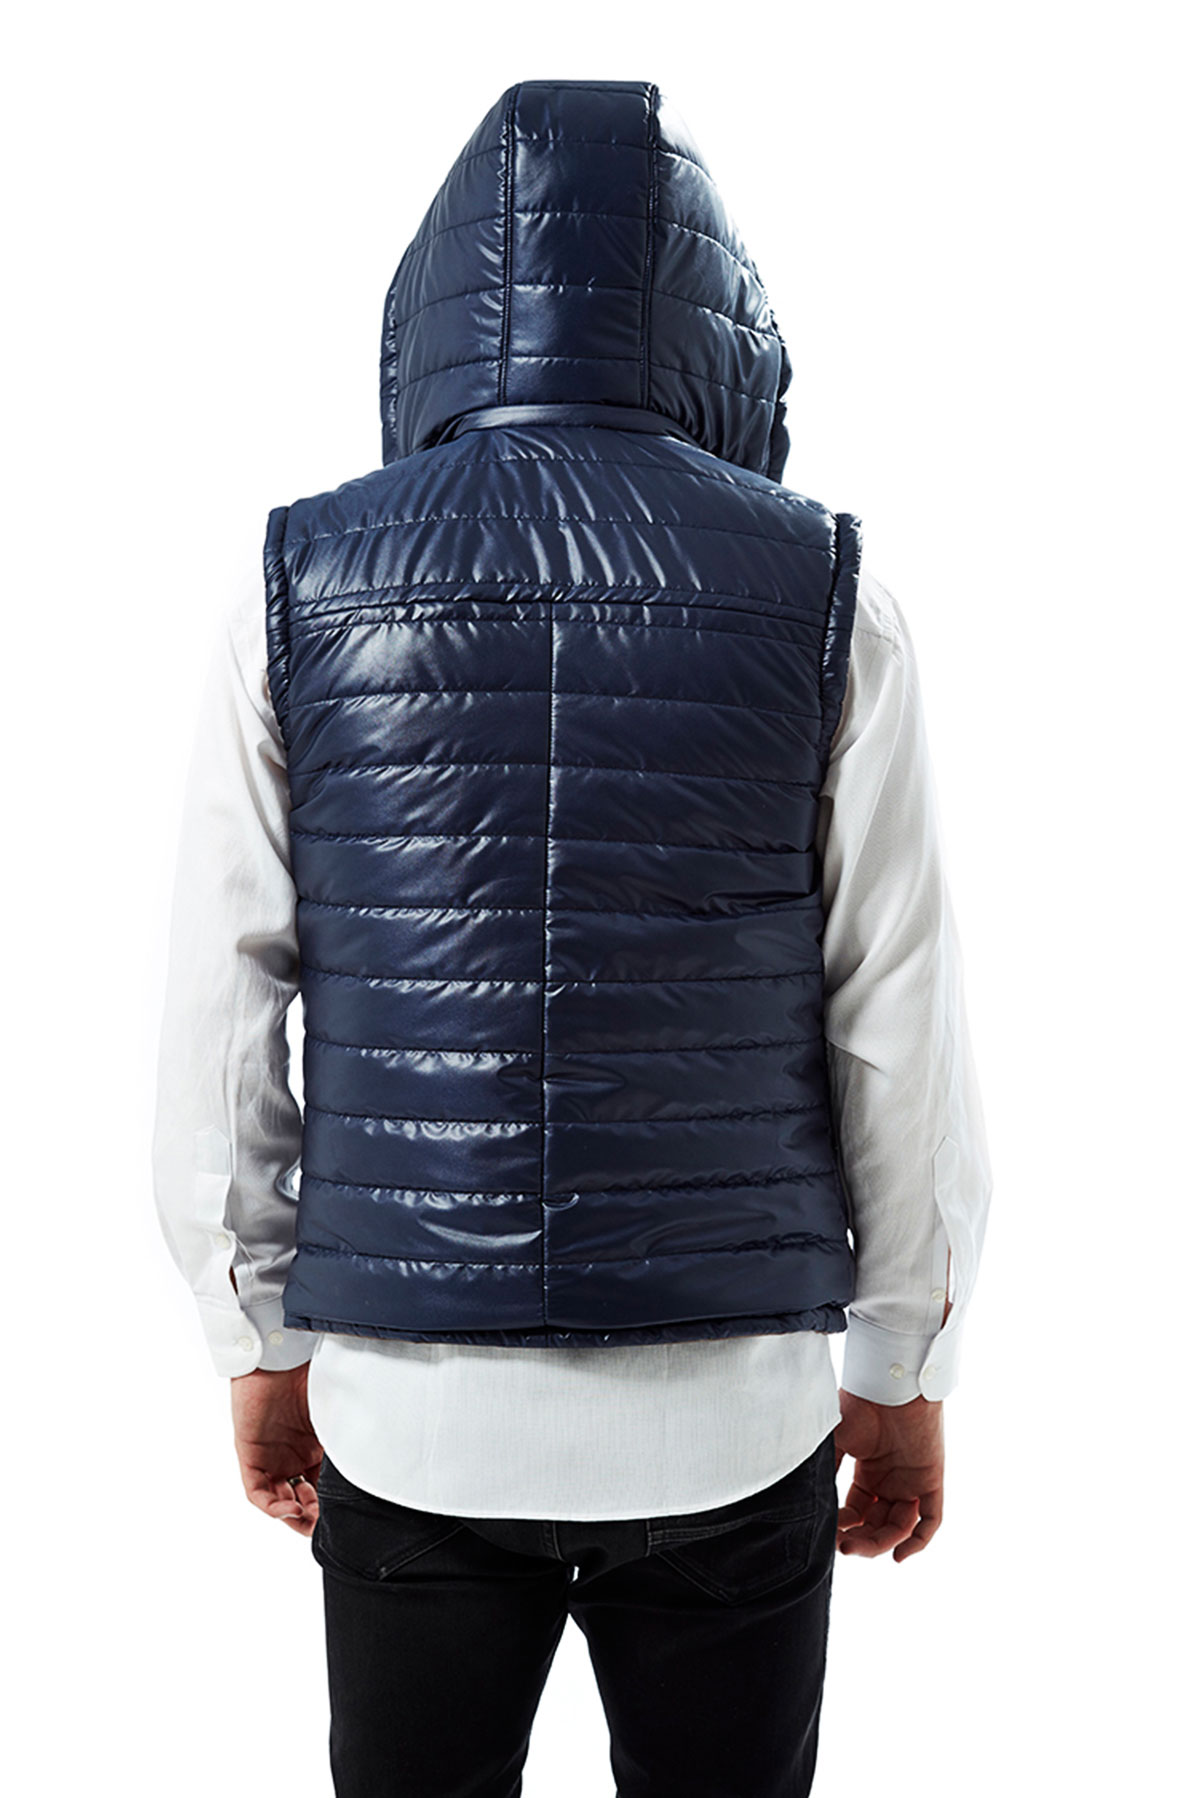 mens quilted leather jacket